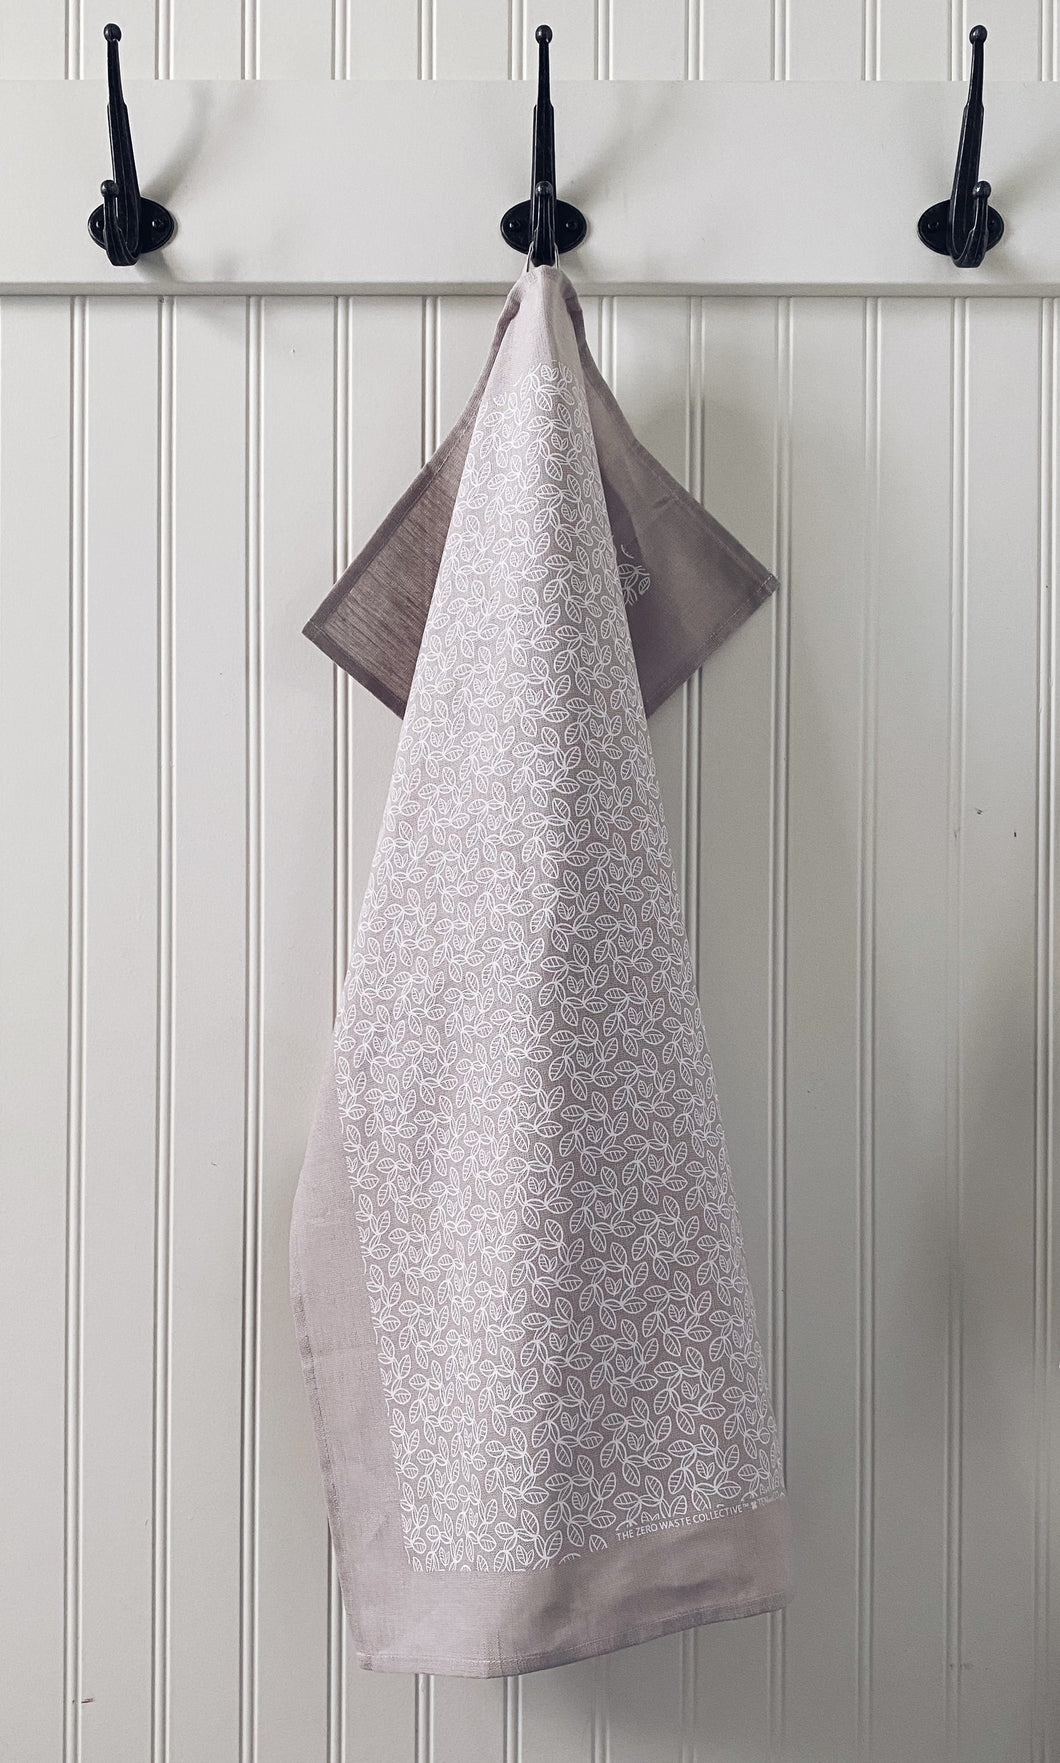 Tea Towel Zero Waste Collective x Ten and Co